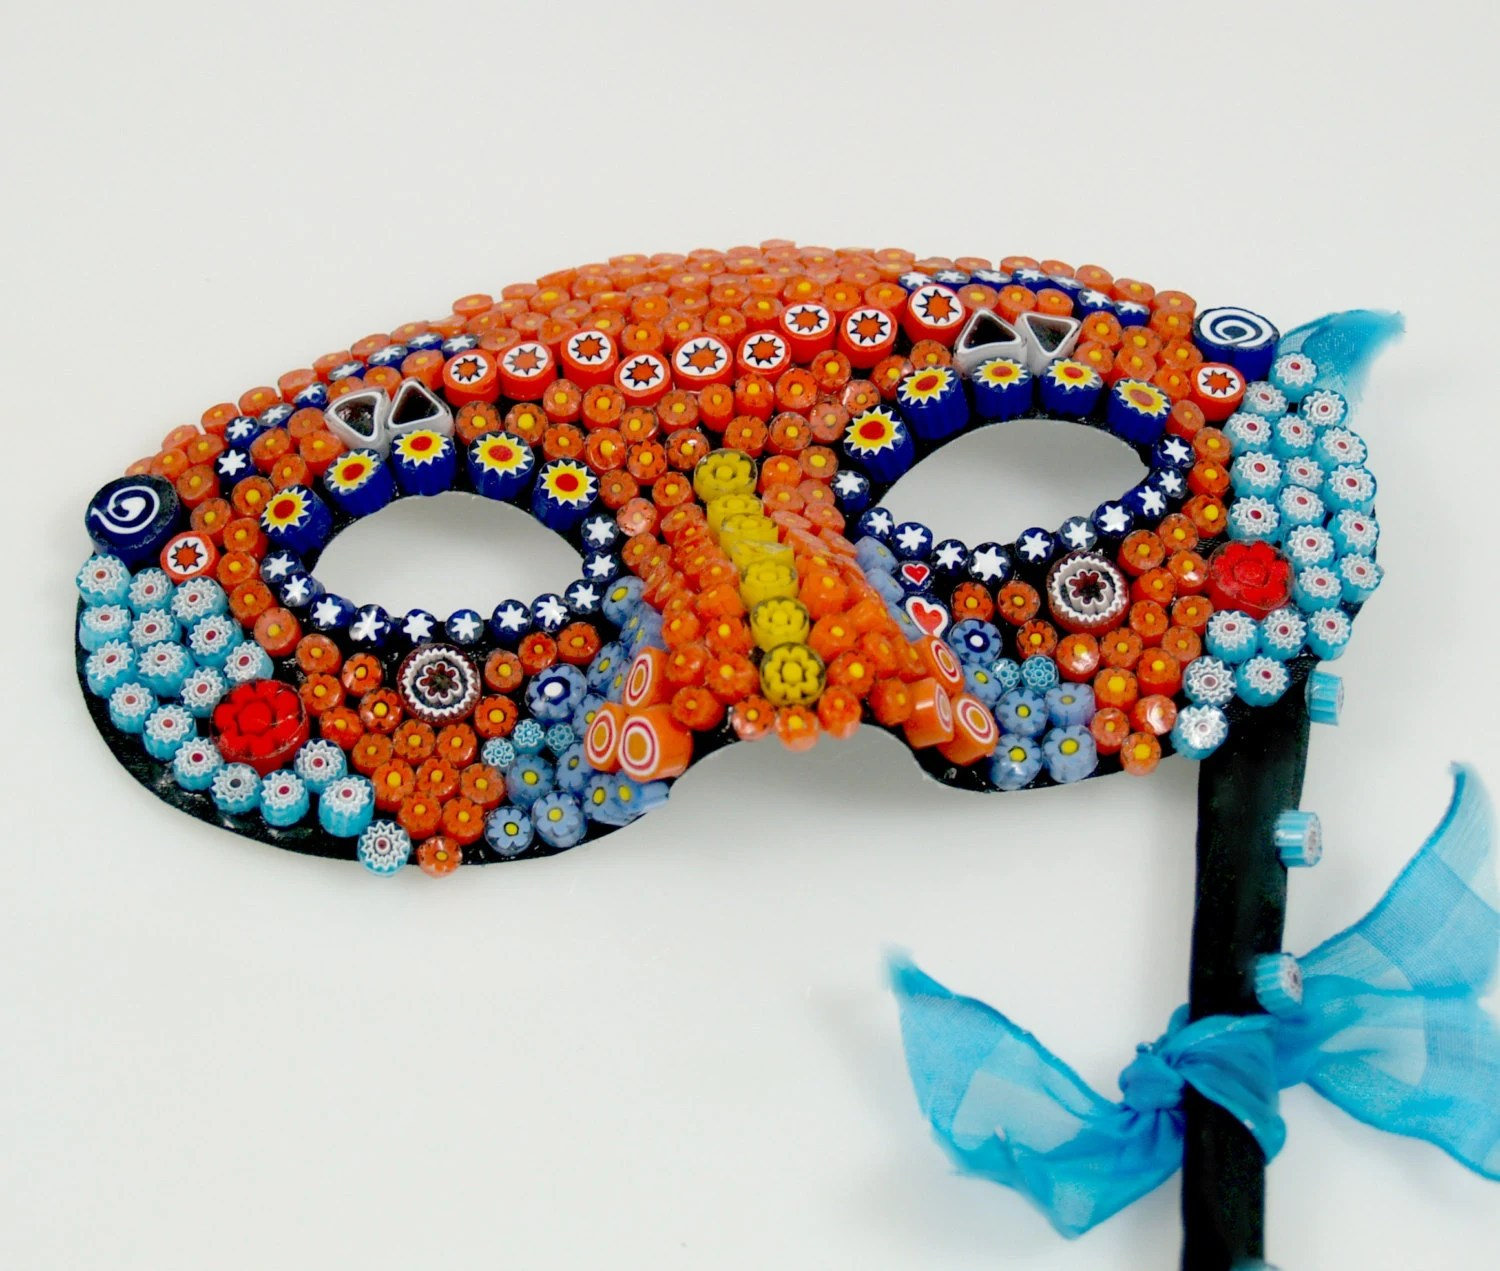 Millefiori Glass Mosaic Mask, Italian Millefiori, Murano Glass, Glass flowers mosaic, Eye Mask, Orange and Blue with Yellow - JanMaitlandGallery